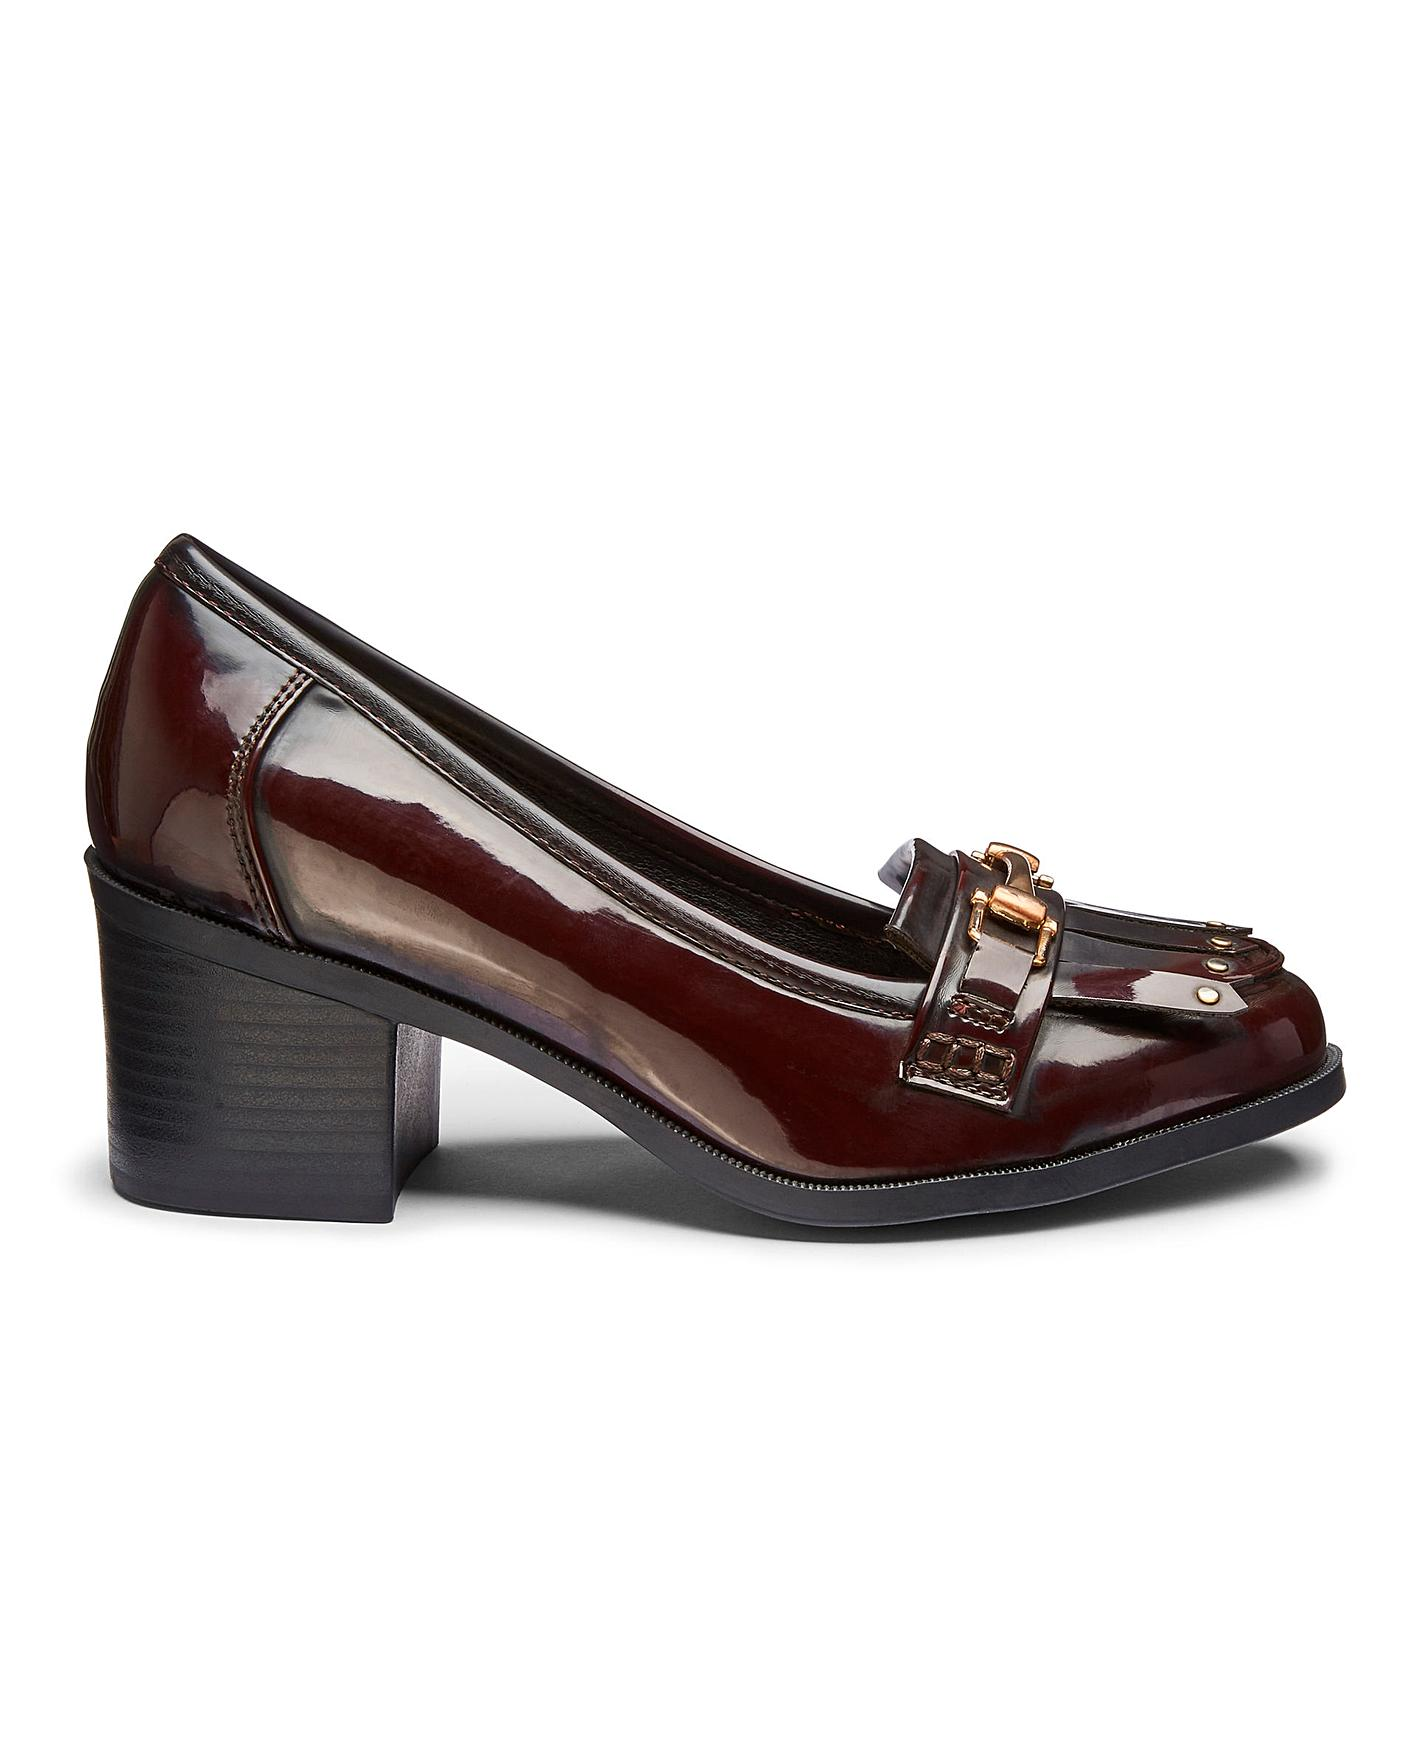 Arna Heeled Loafer Wide Fit   Oxendales